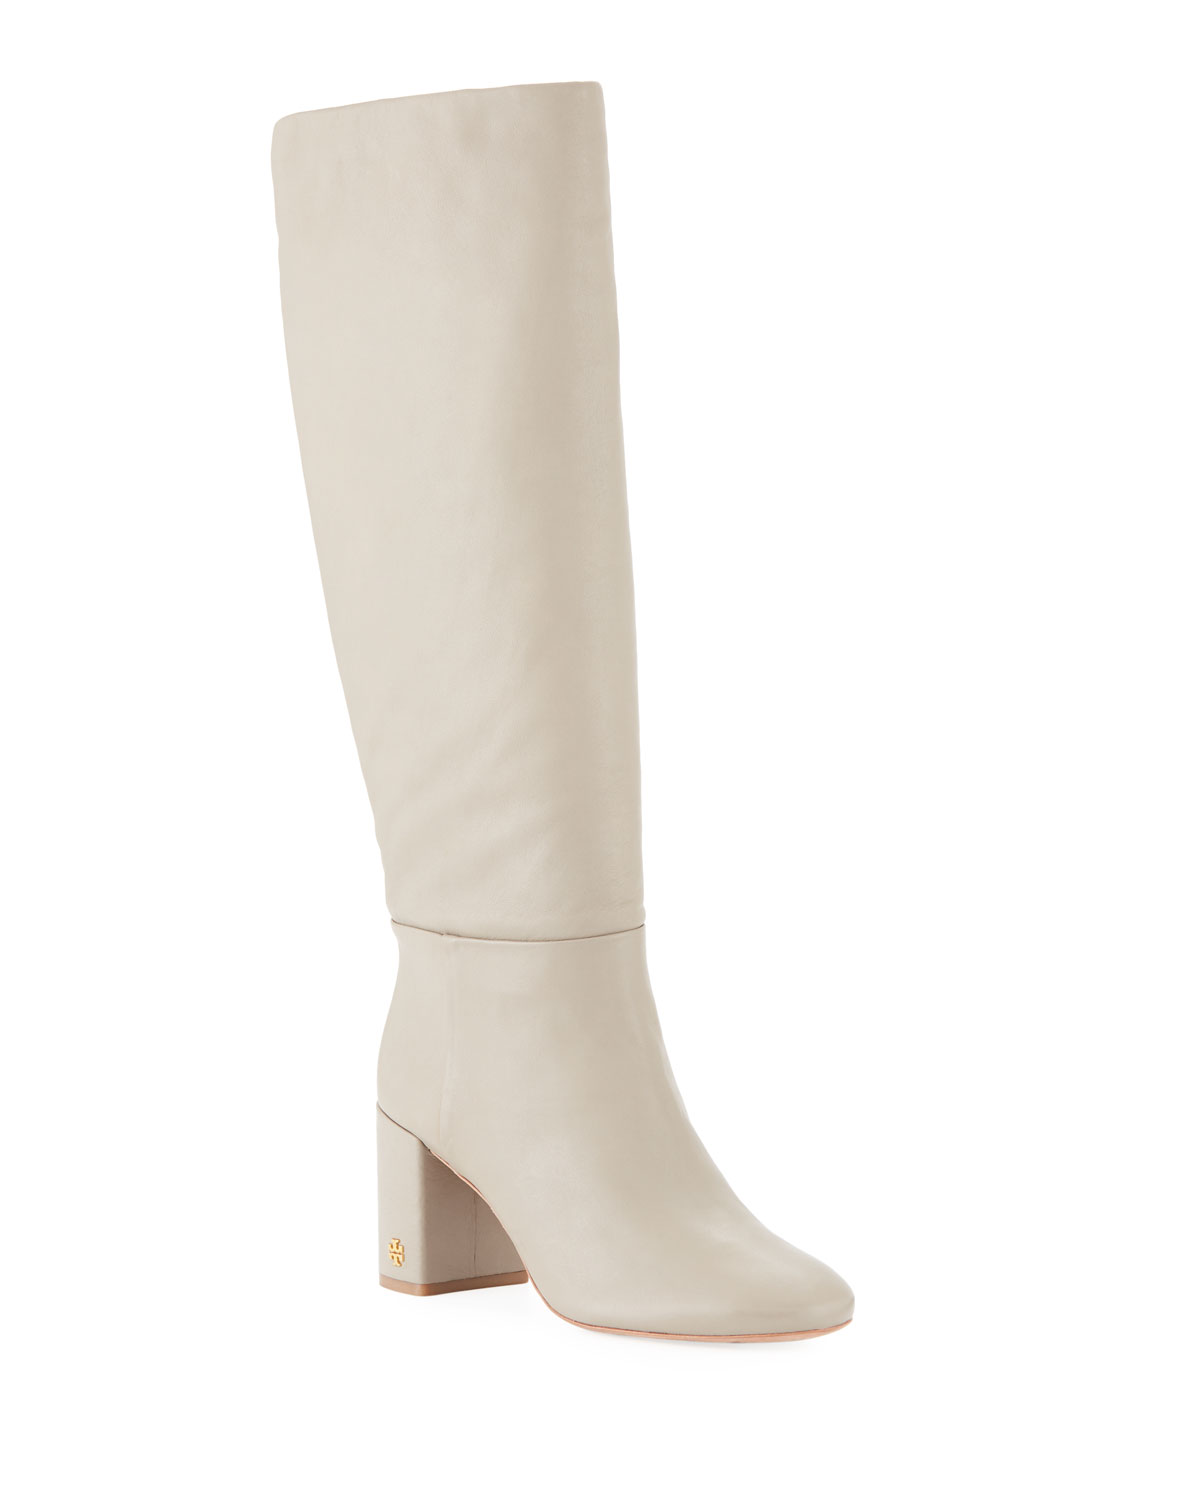 6f0457bc414 Tory Burch Brooke Slouchy Leather Block-Heel Knee Boots